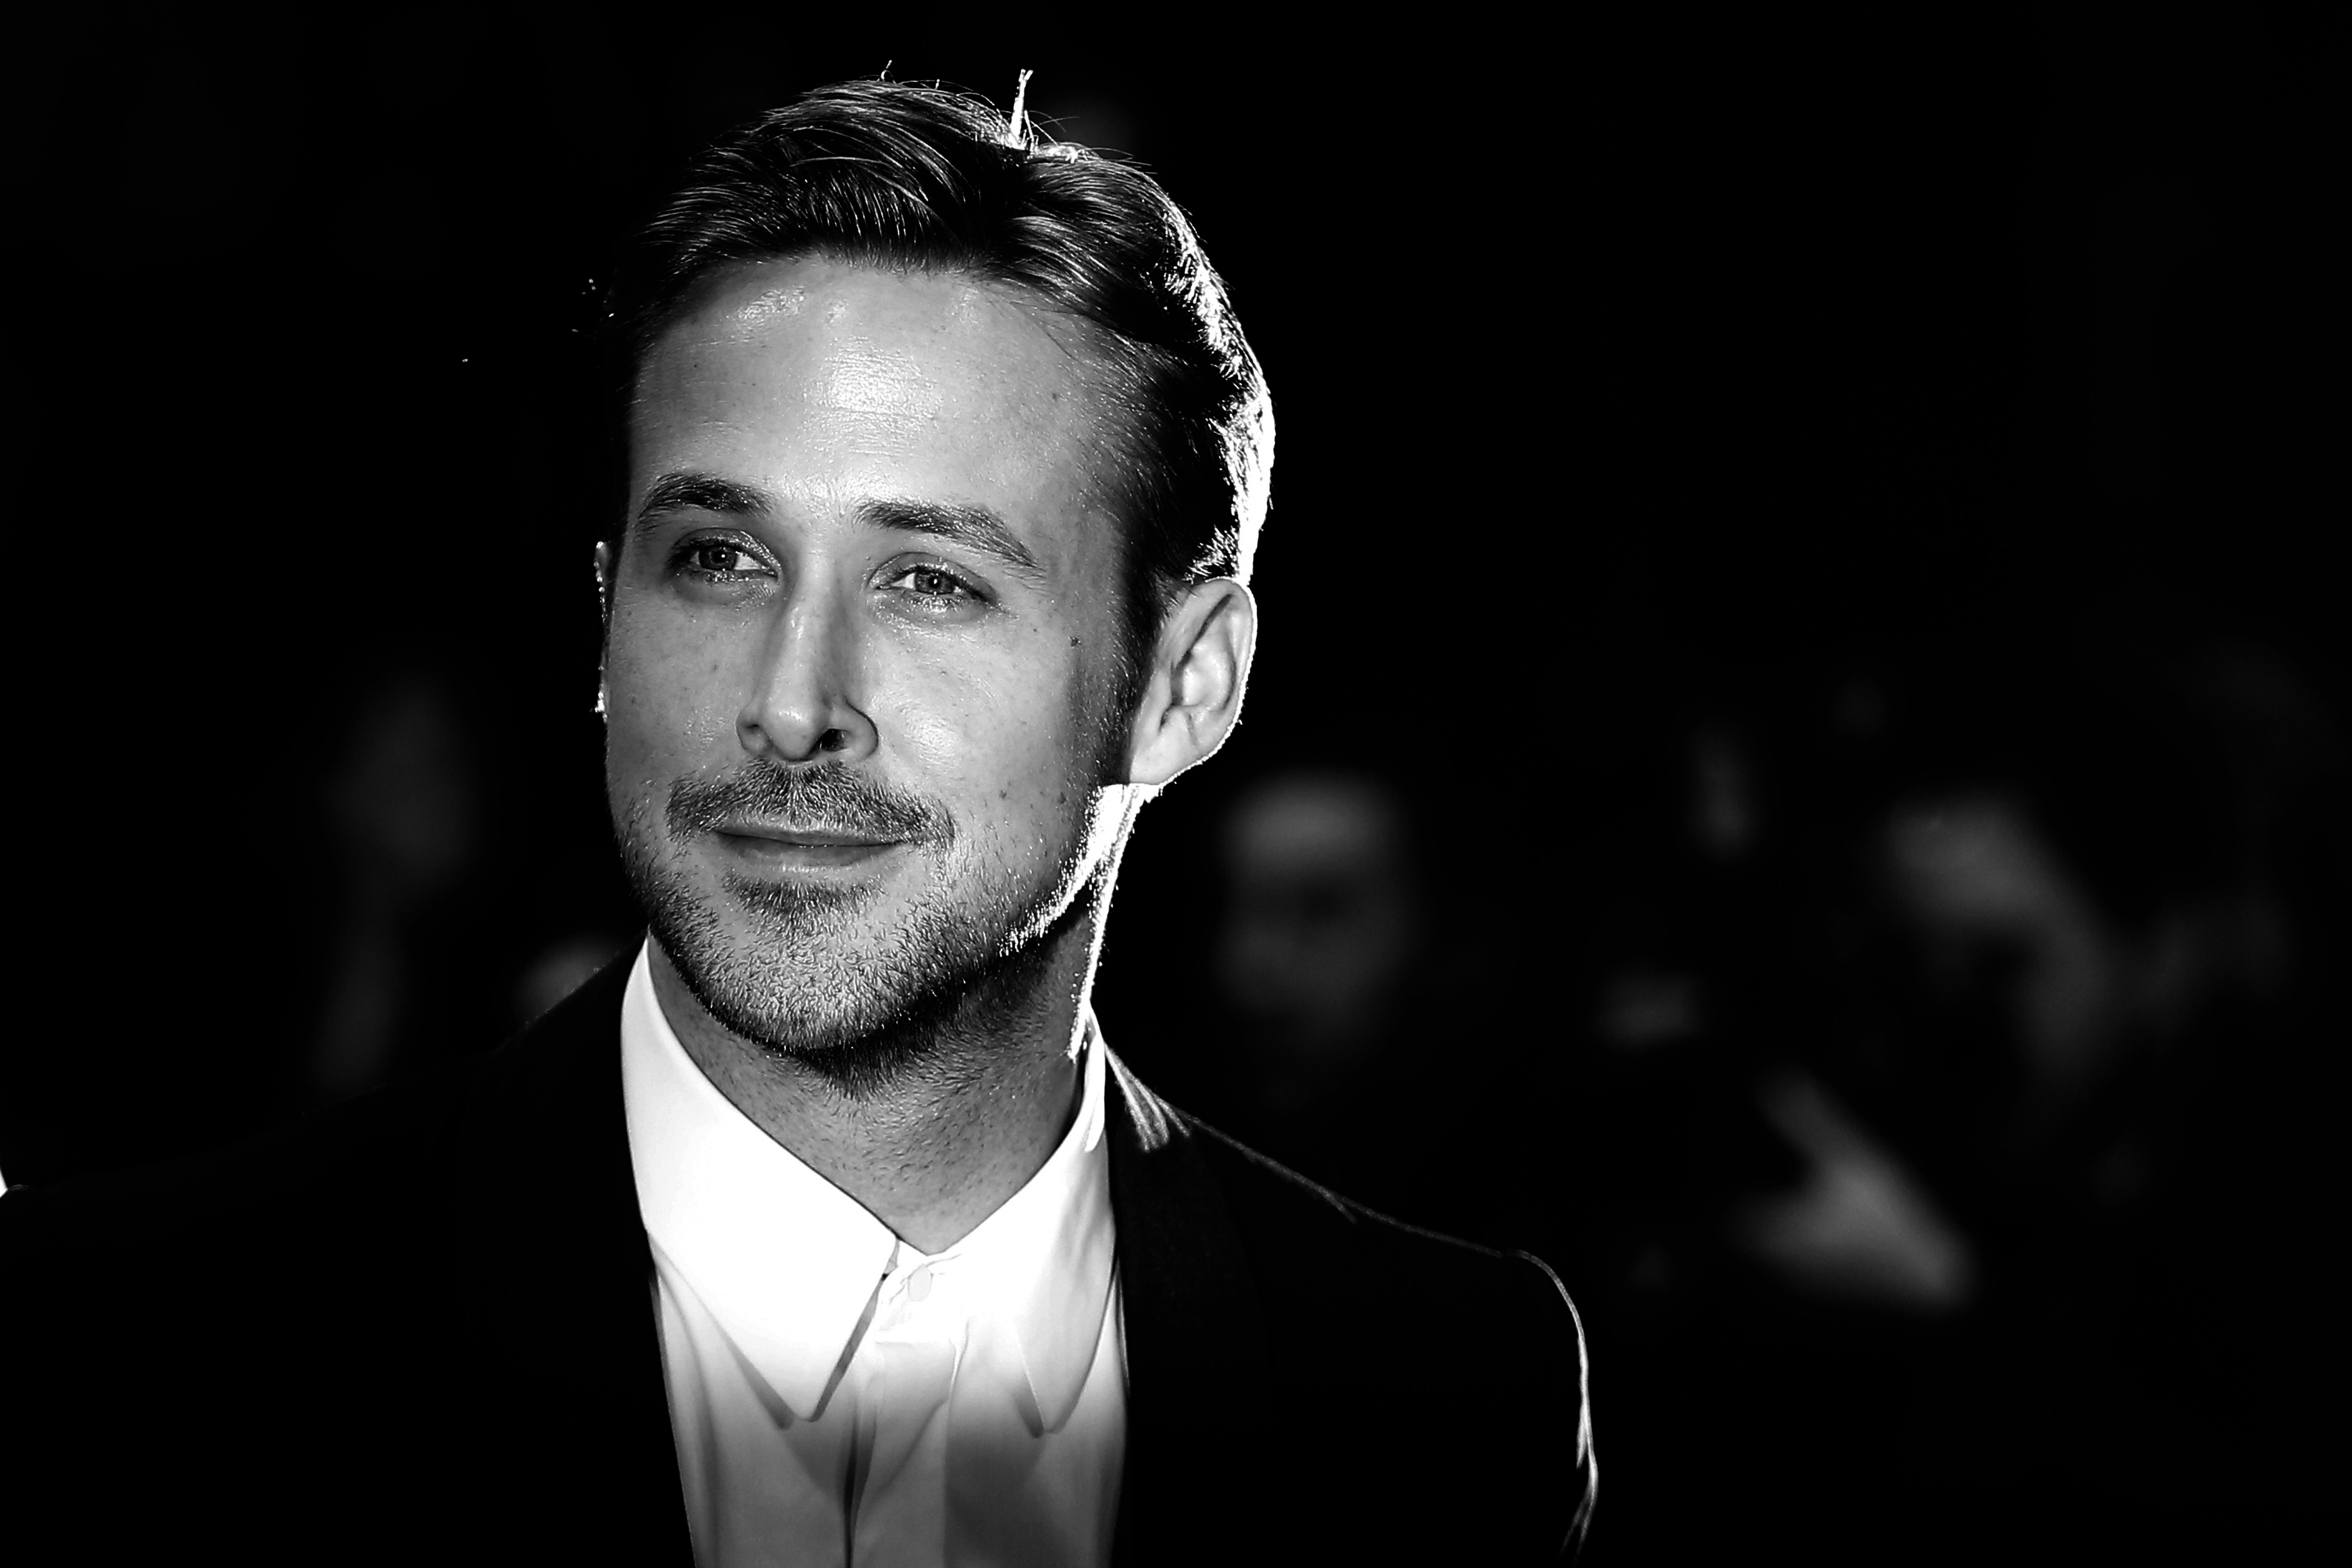 BLACK AND WHITE VERSION Canadian actor Ryan Gosling poses as he arrives for the screening of the film 'Lost River' at the 67t